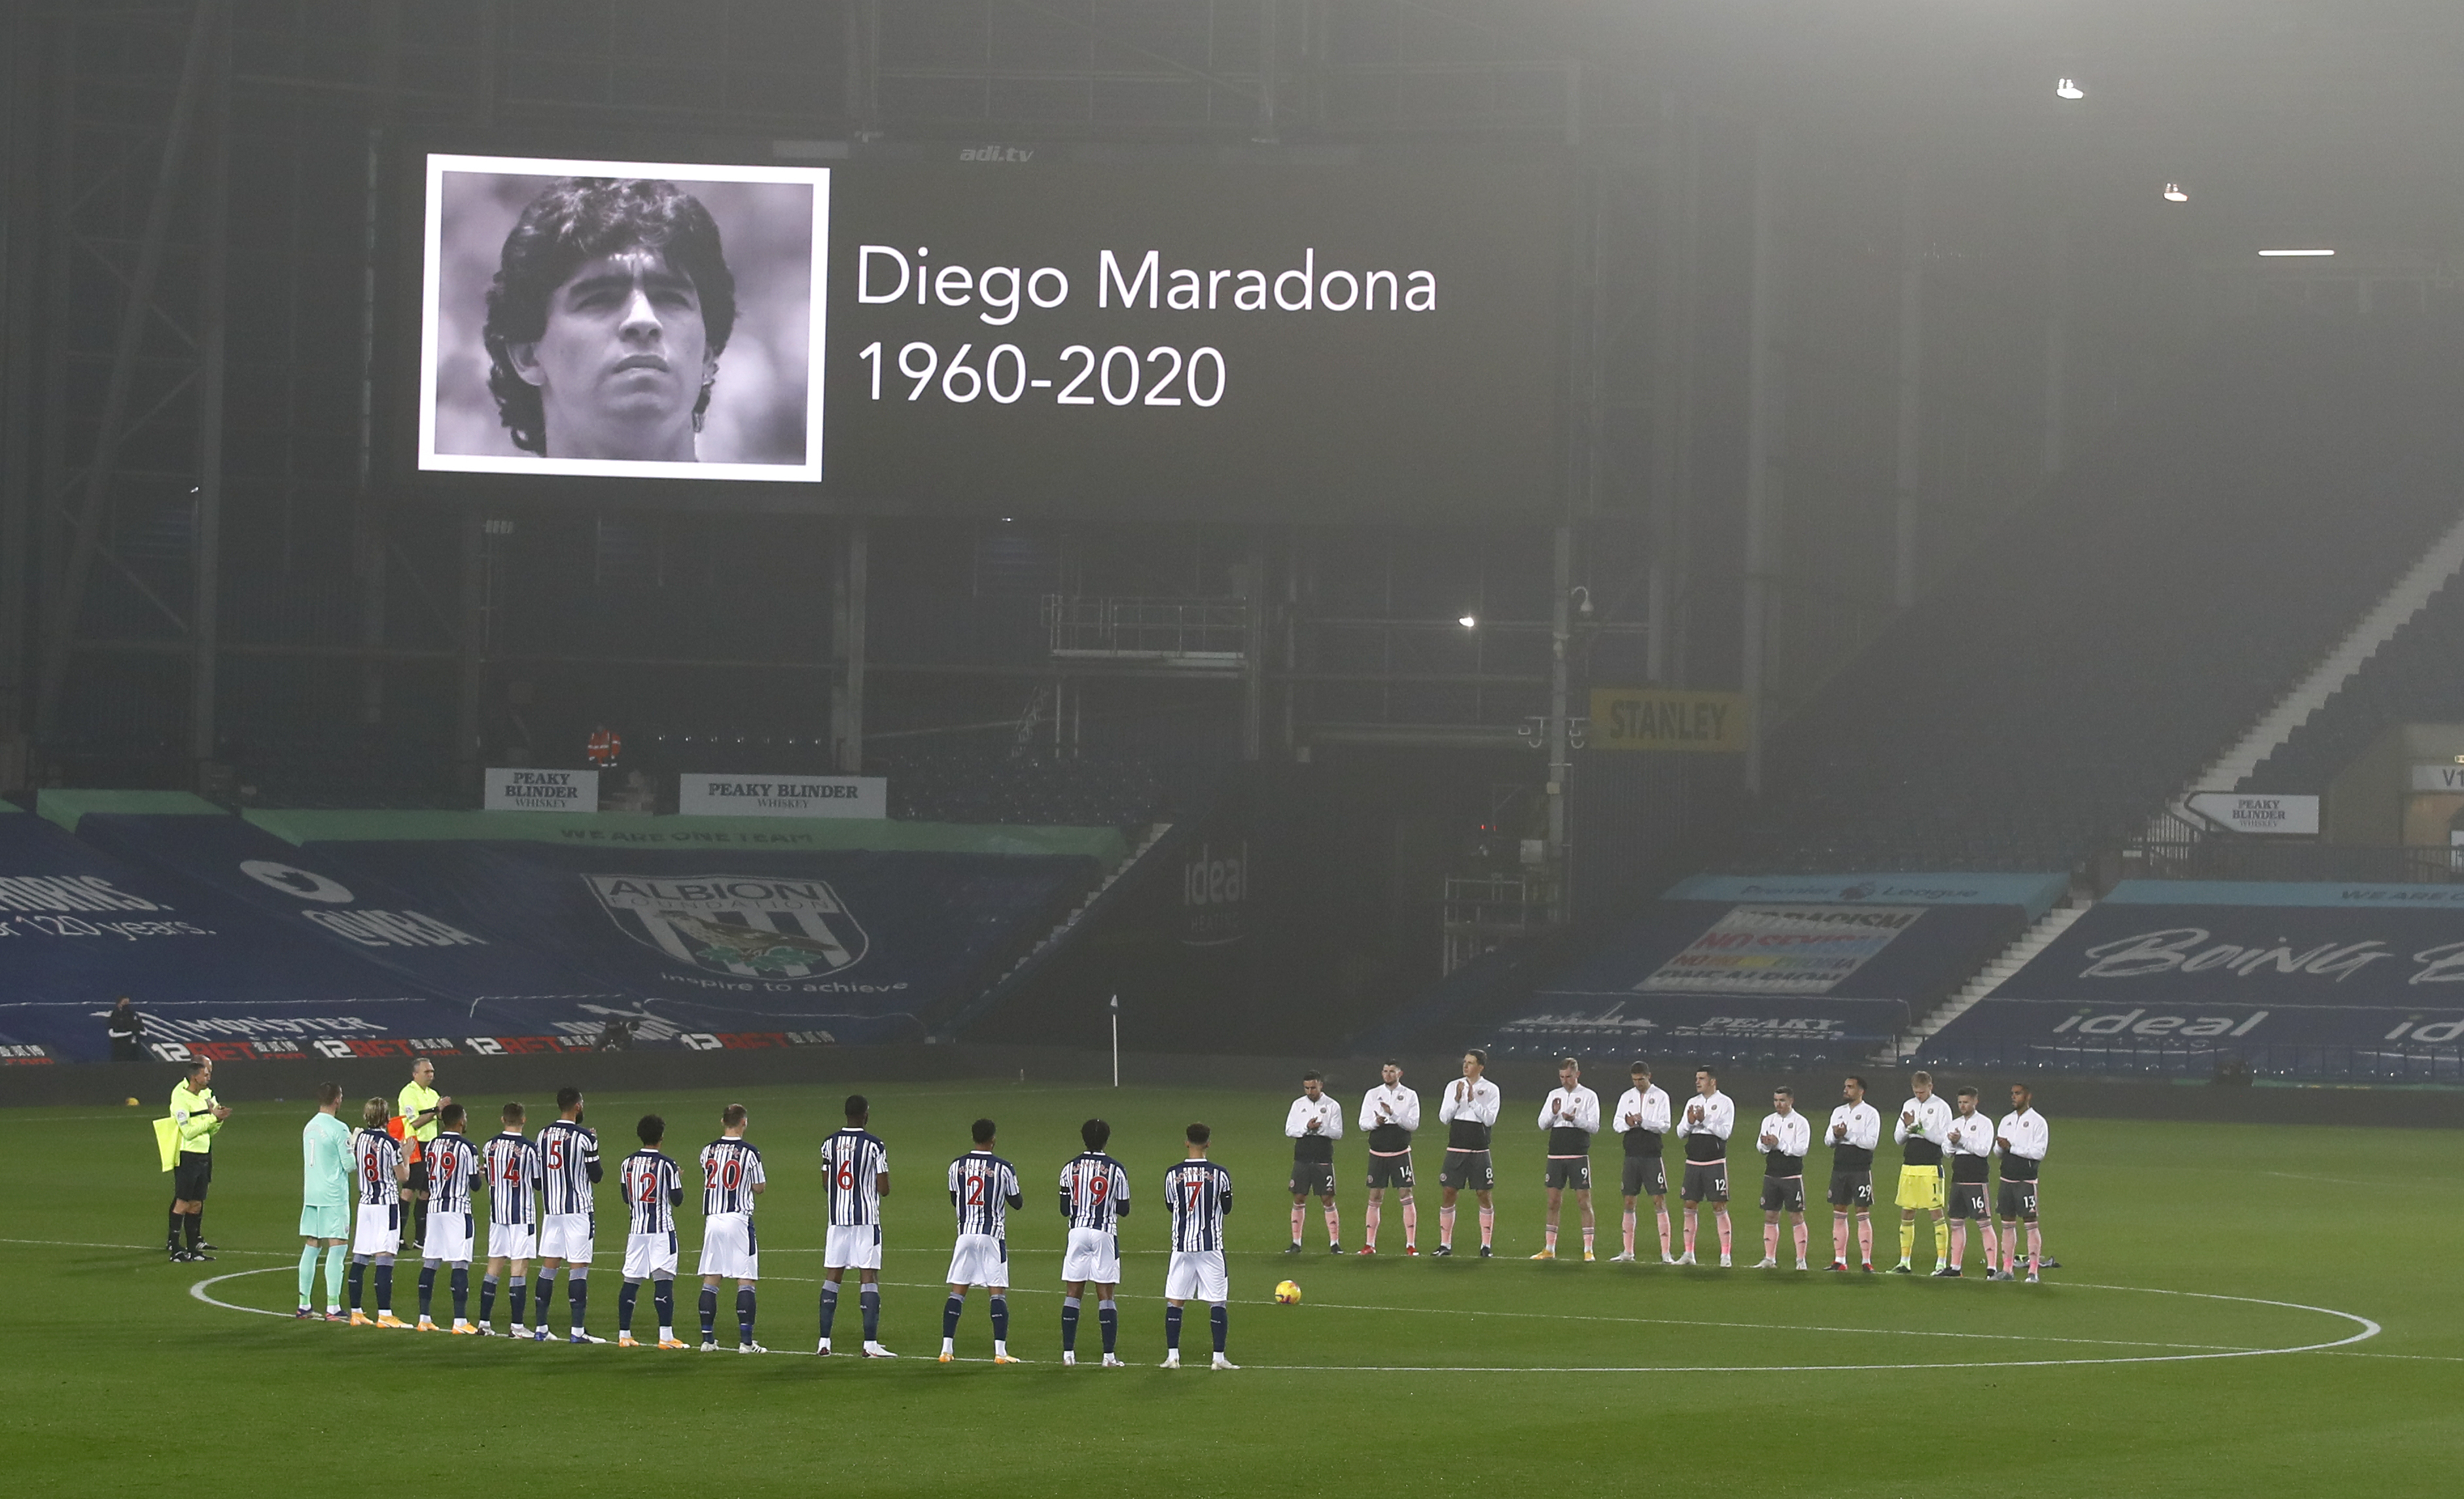 Players stand and applaud for a minute in memory of Argentine soccer star Diego Maradona prior to the start during the English Premier League soccer match between West Bromwich Albion and Sheffield United at The Hawthorns in West Bromwich, England, Saturday, Nov. 28, 2020. (Jason Cairnduff/Pool via AP)